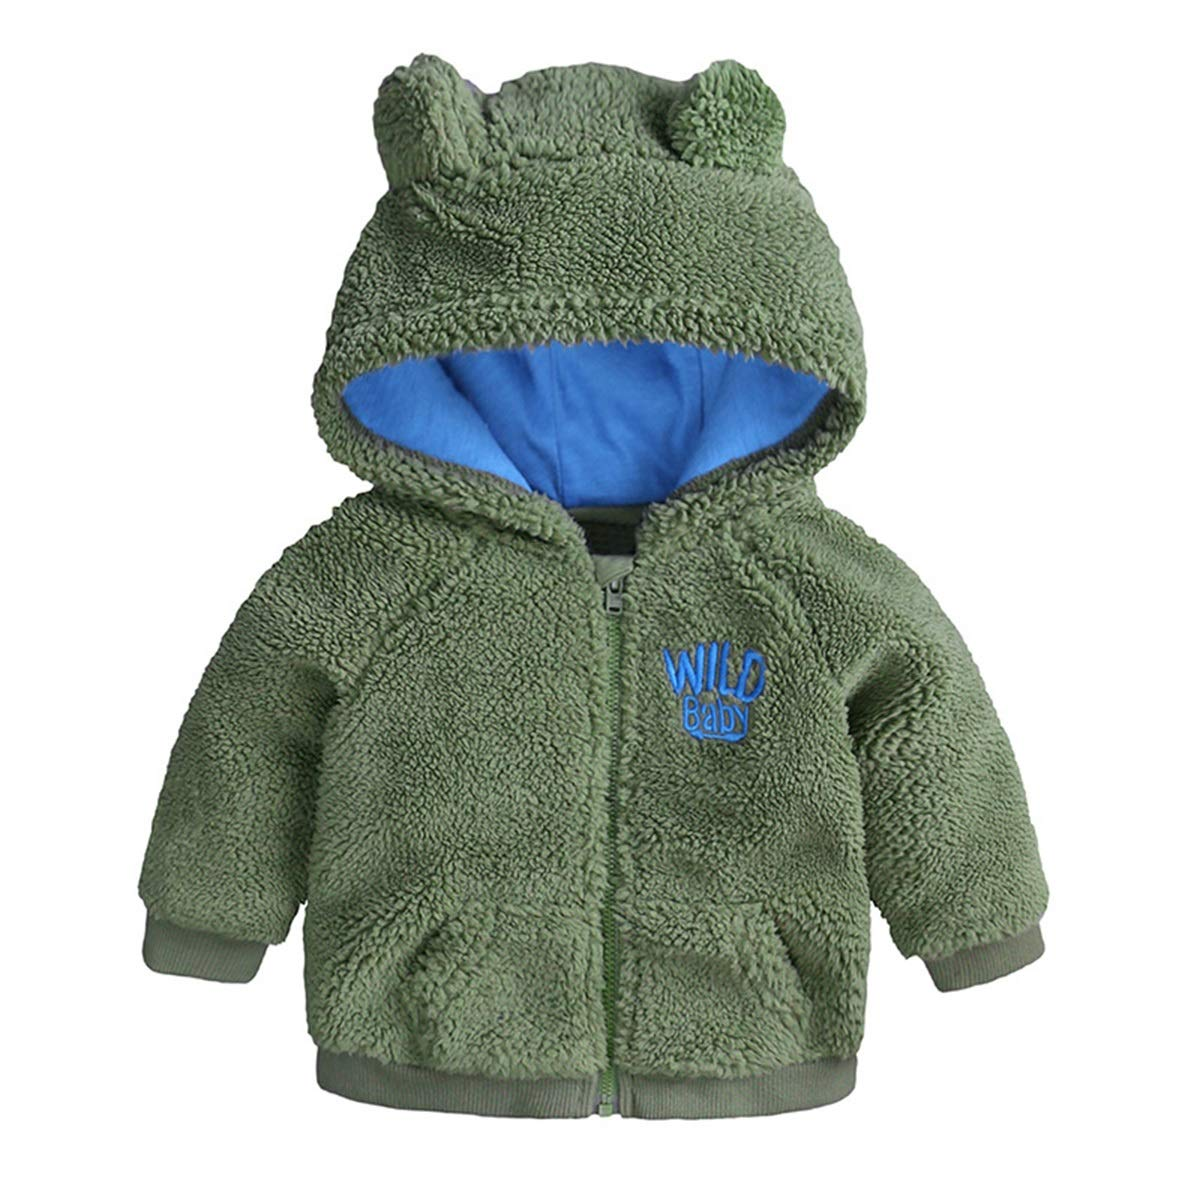 2ee18be93 Chennie Newborn Baby Soft Thick Warm Hooded Hoodie Winter Coats ...